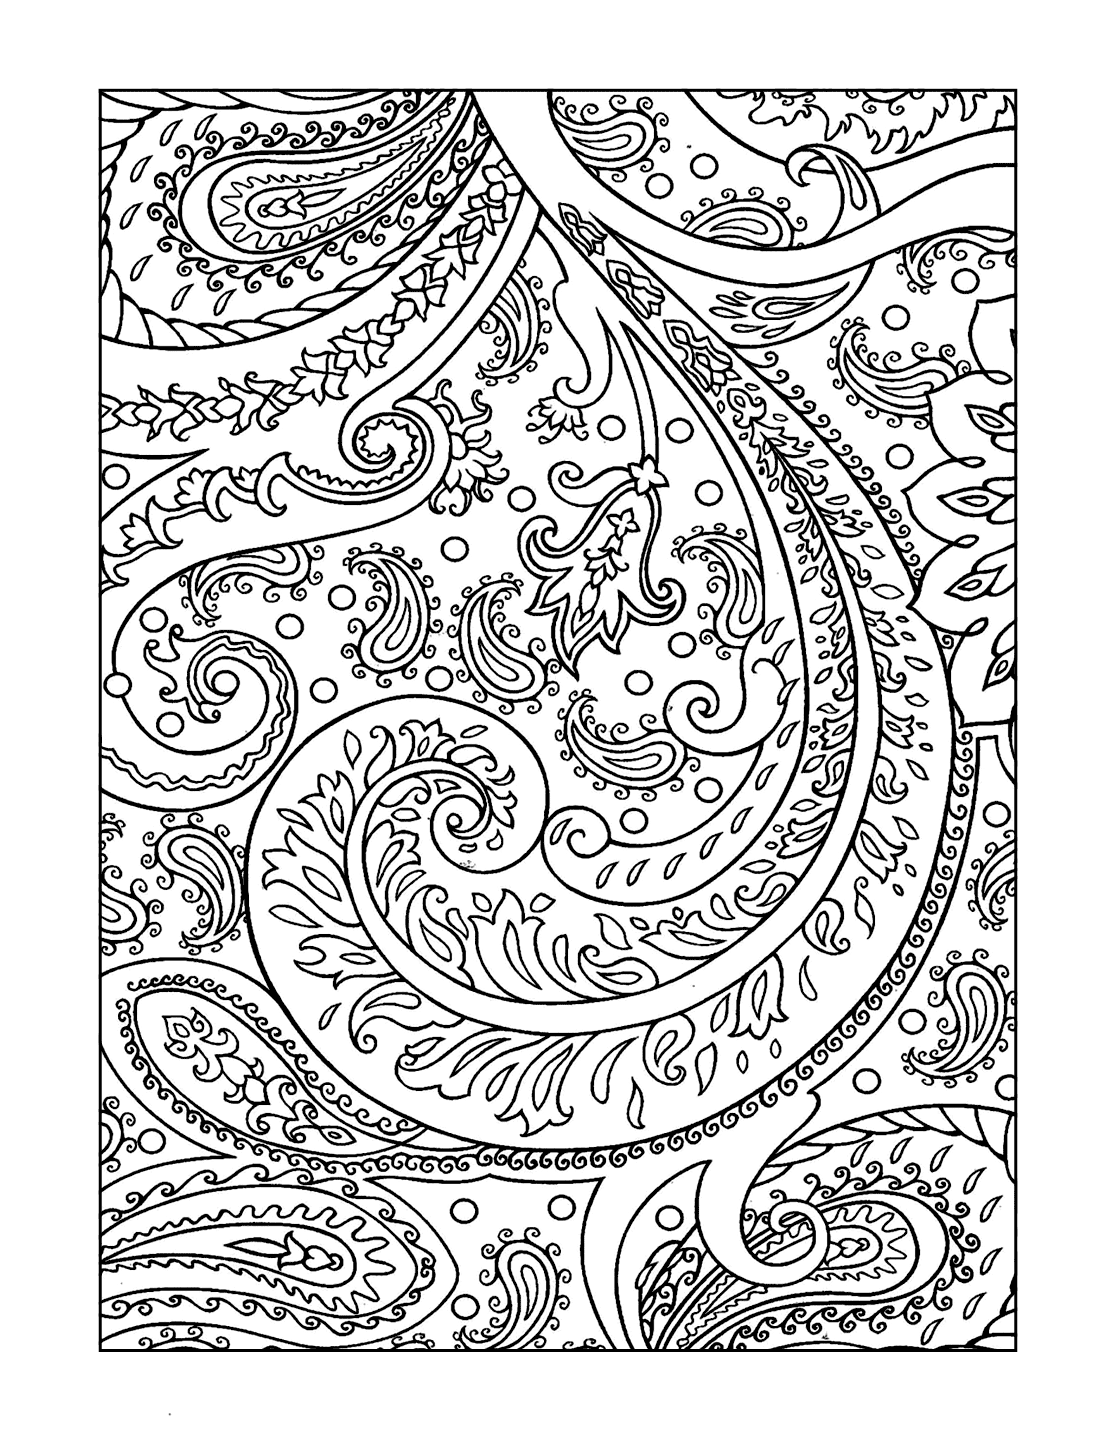 Floral Paisley Design Coloring Page